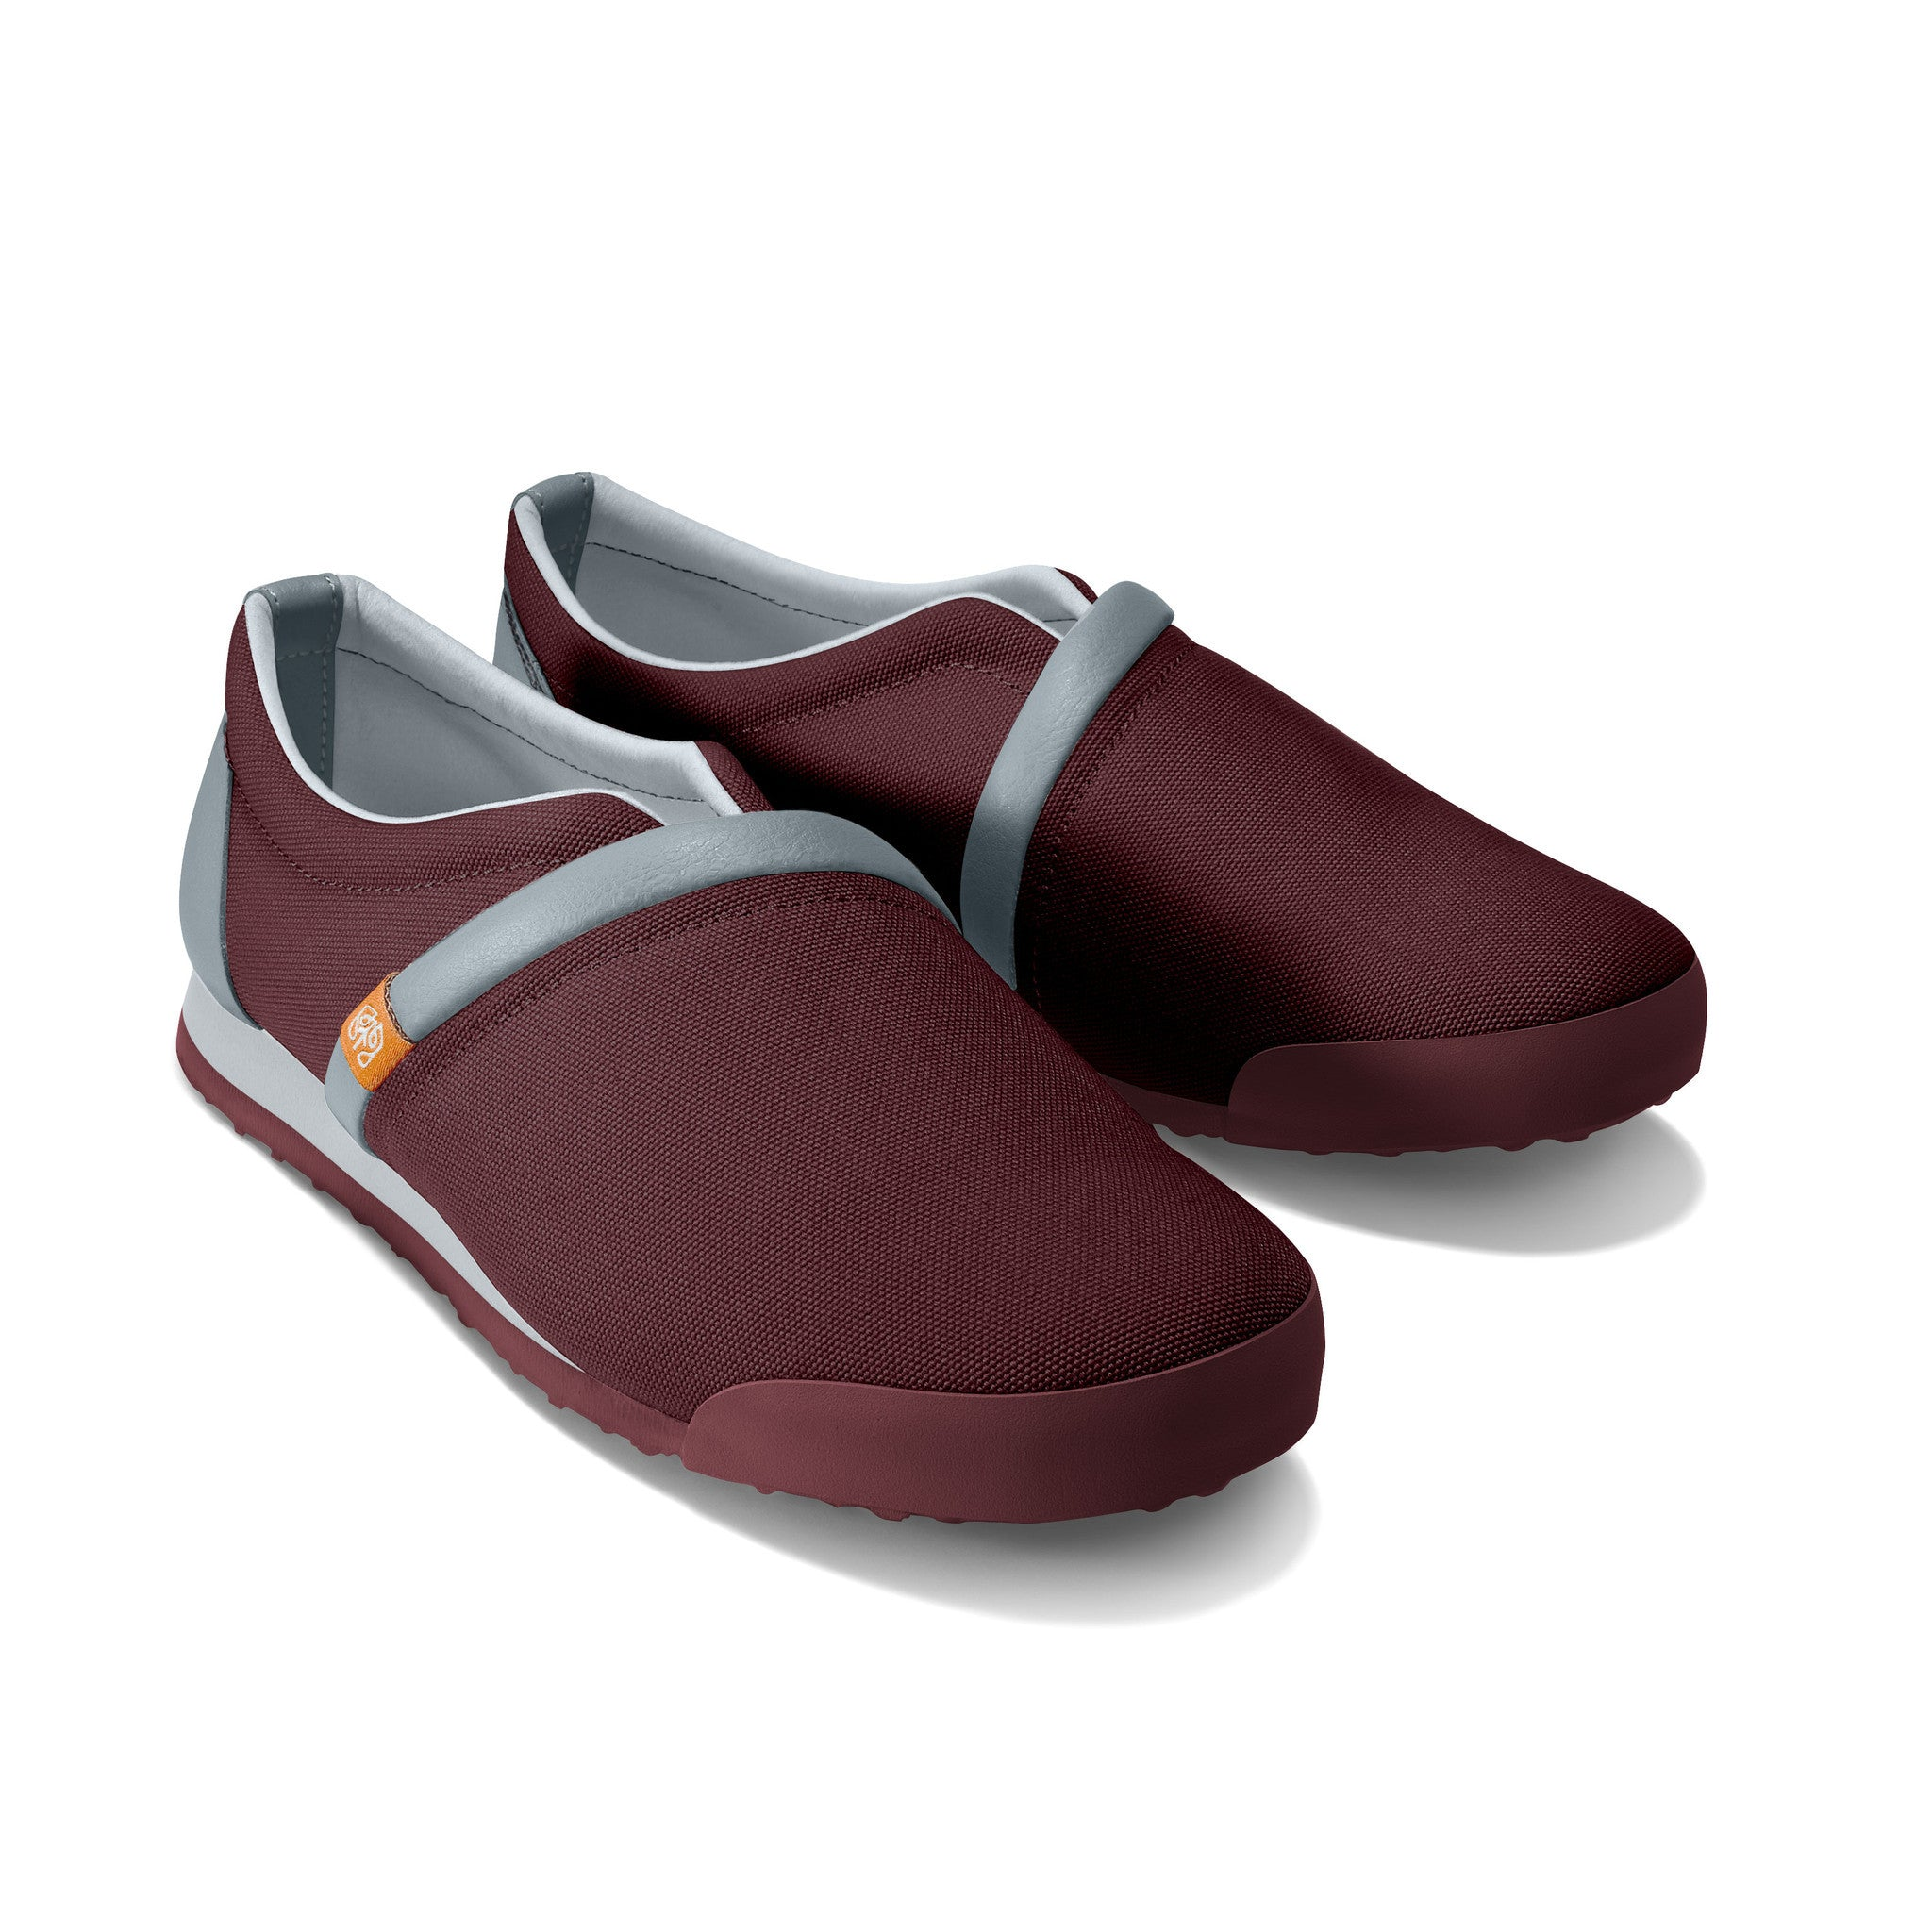 Cabernet - Common Ground Footwear Shoes Right Perspective View